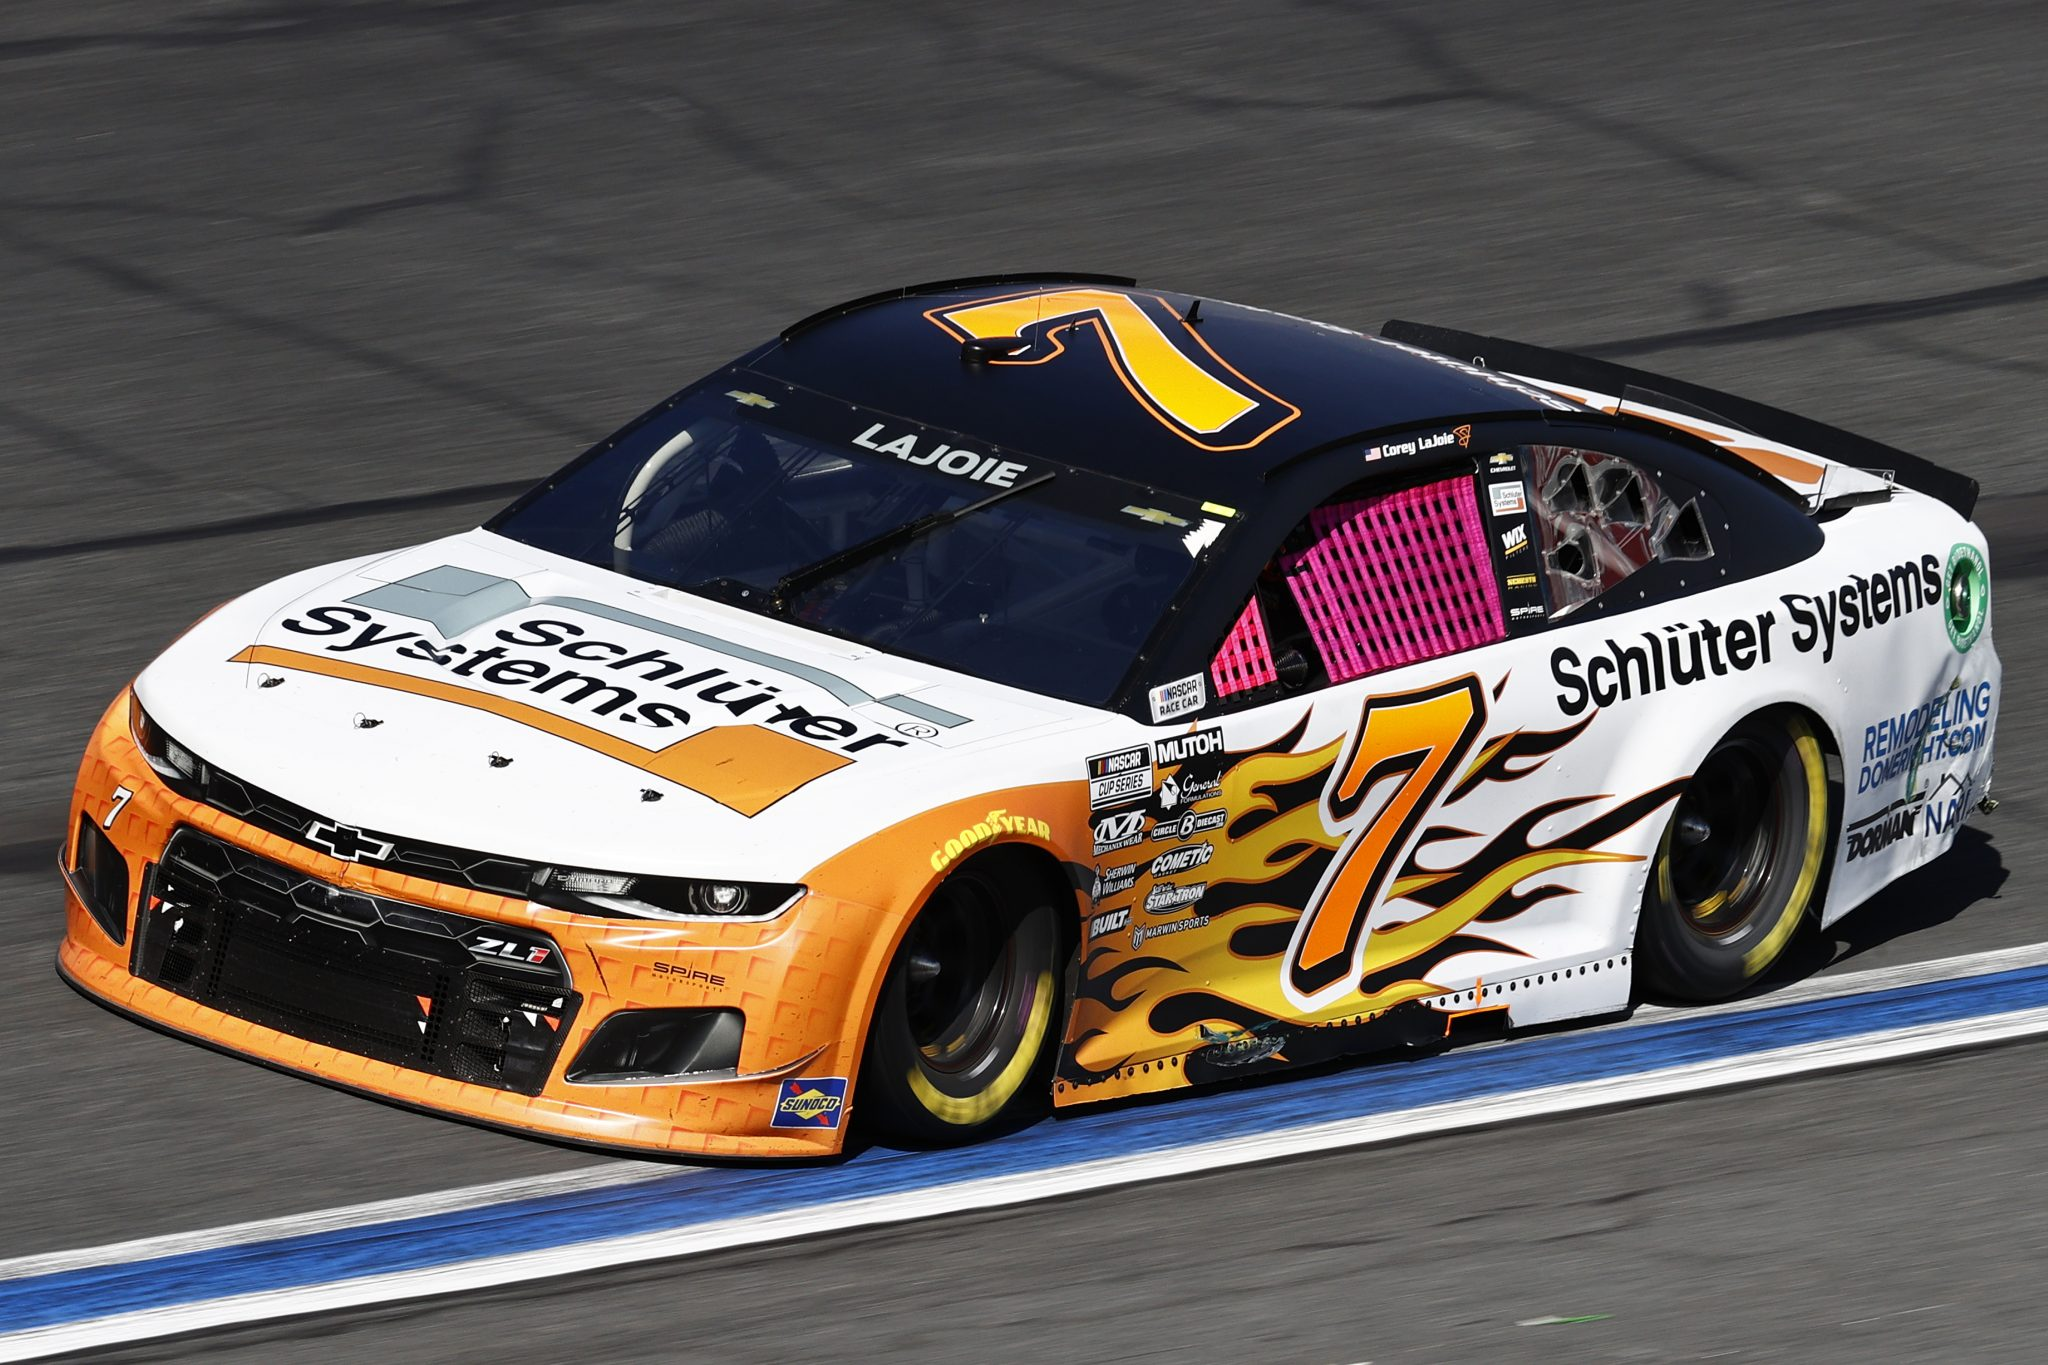 CONCORD, NORTH CAROLINA - OCTOBER 10: Corey LaJoie, driver of the #7 Schluter Systems Chevrolet, drives during the NASCAR Cup Series Bank of America ROVAL 400 at Charlotte Motor Speedway on October 10, 2021 in Concord, North Carolina. (Photo by Jared C. Tilton/Getty Images) | Getty Images